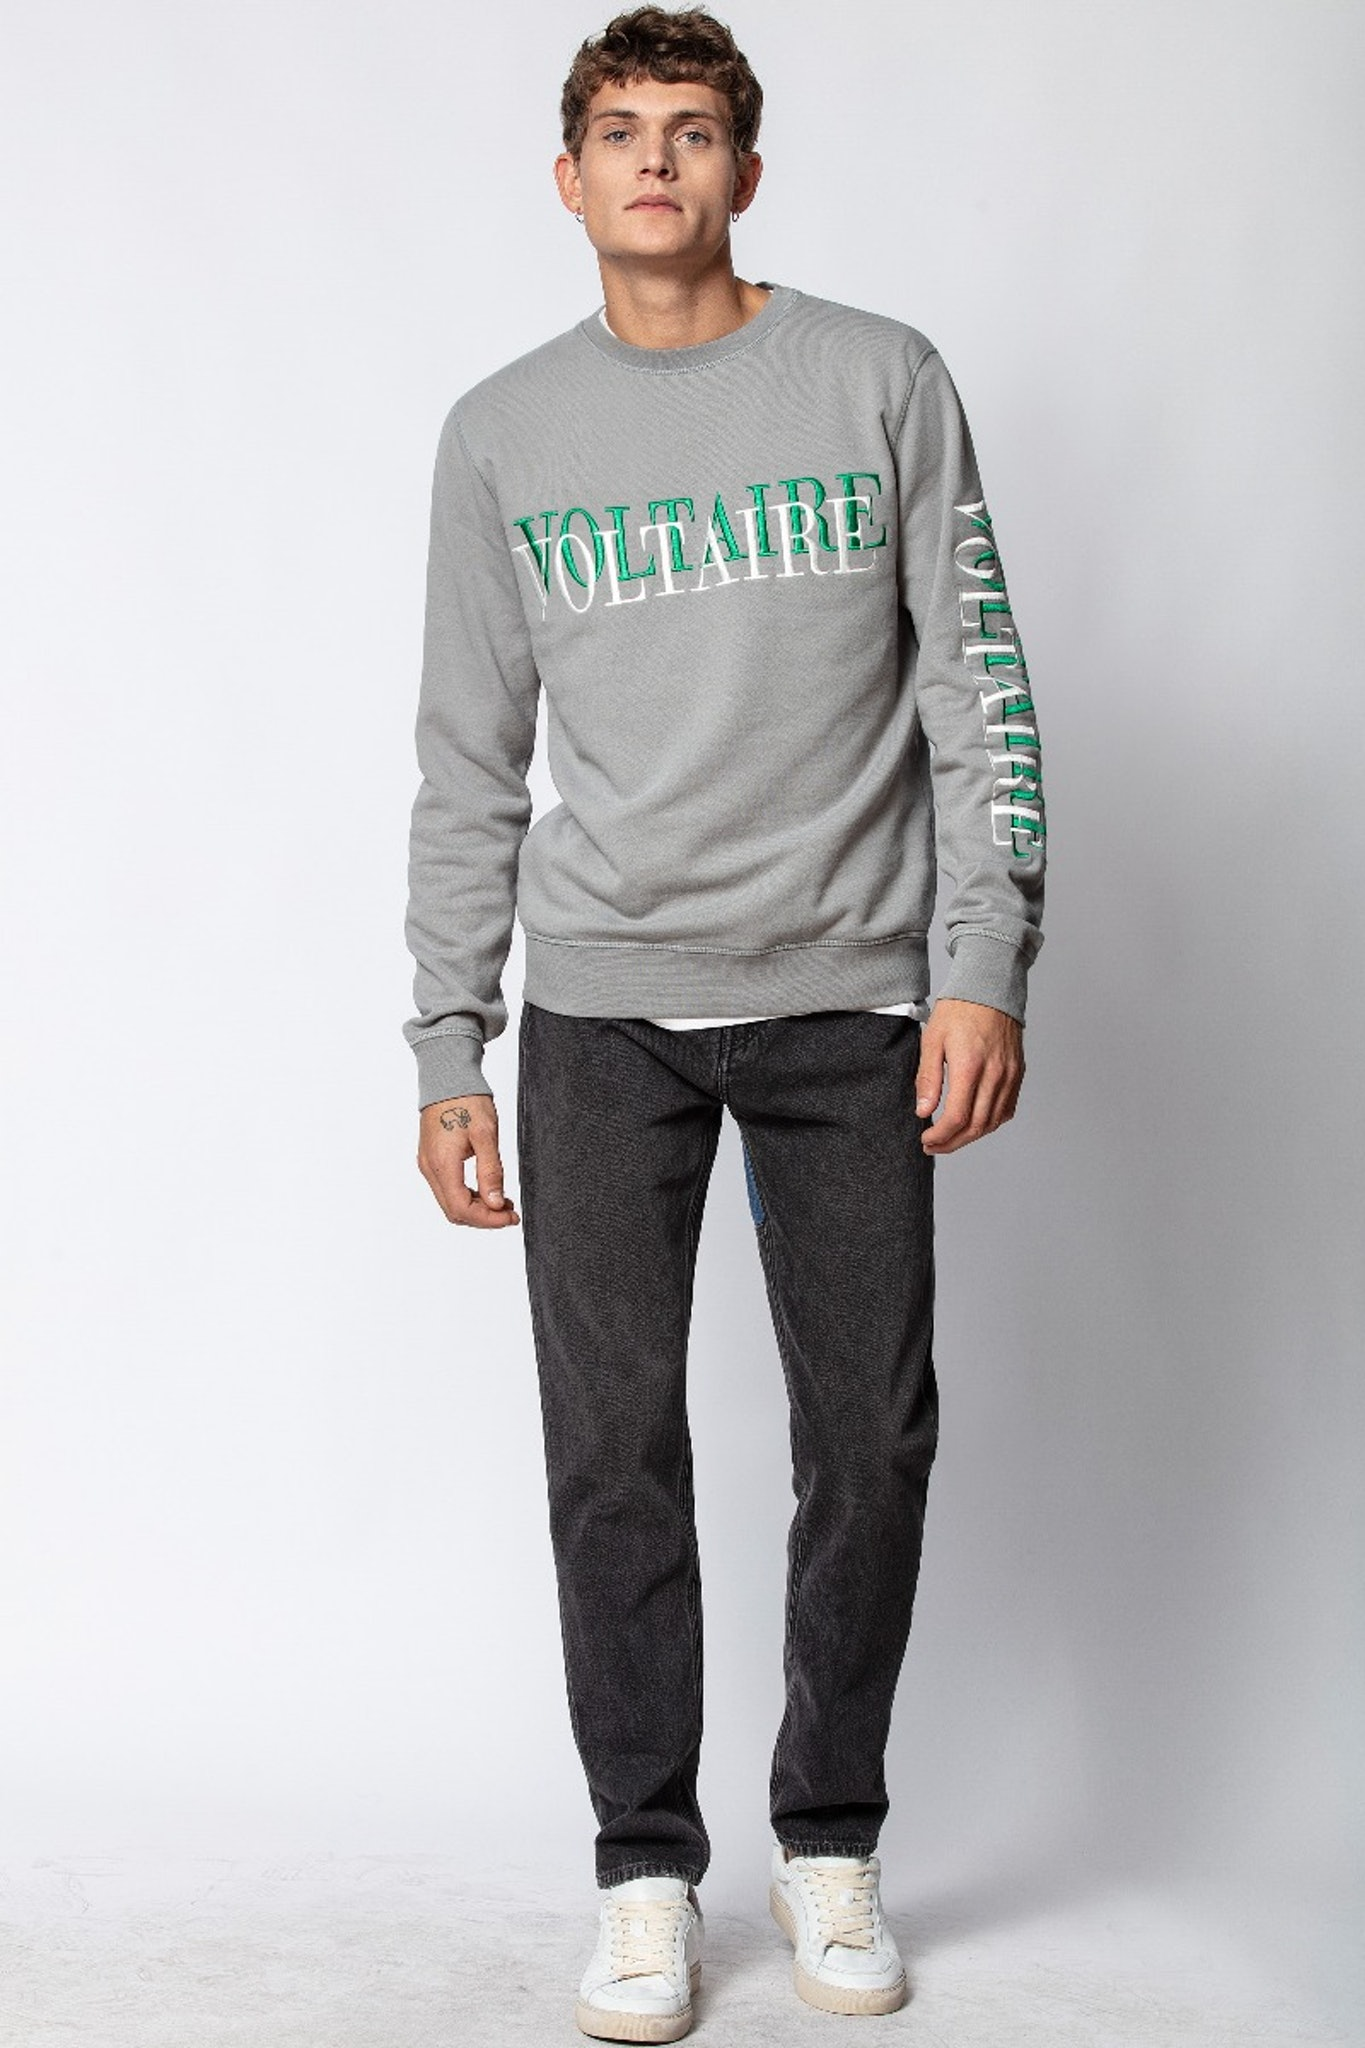 Sudadera Seuil Voltaire